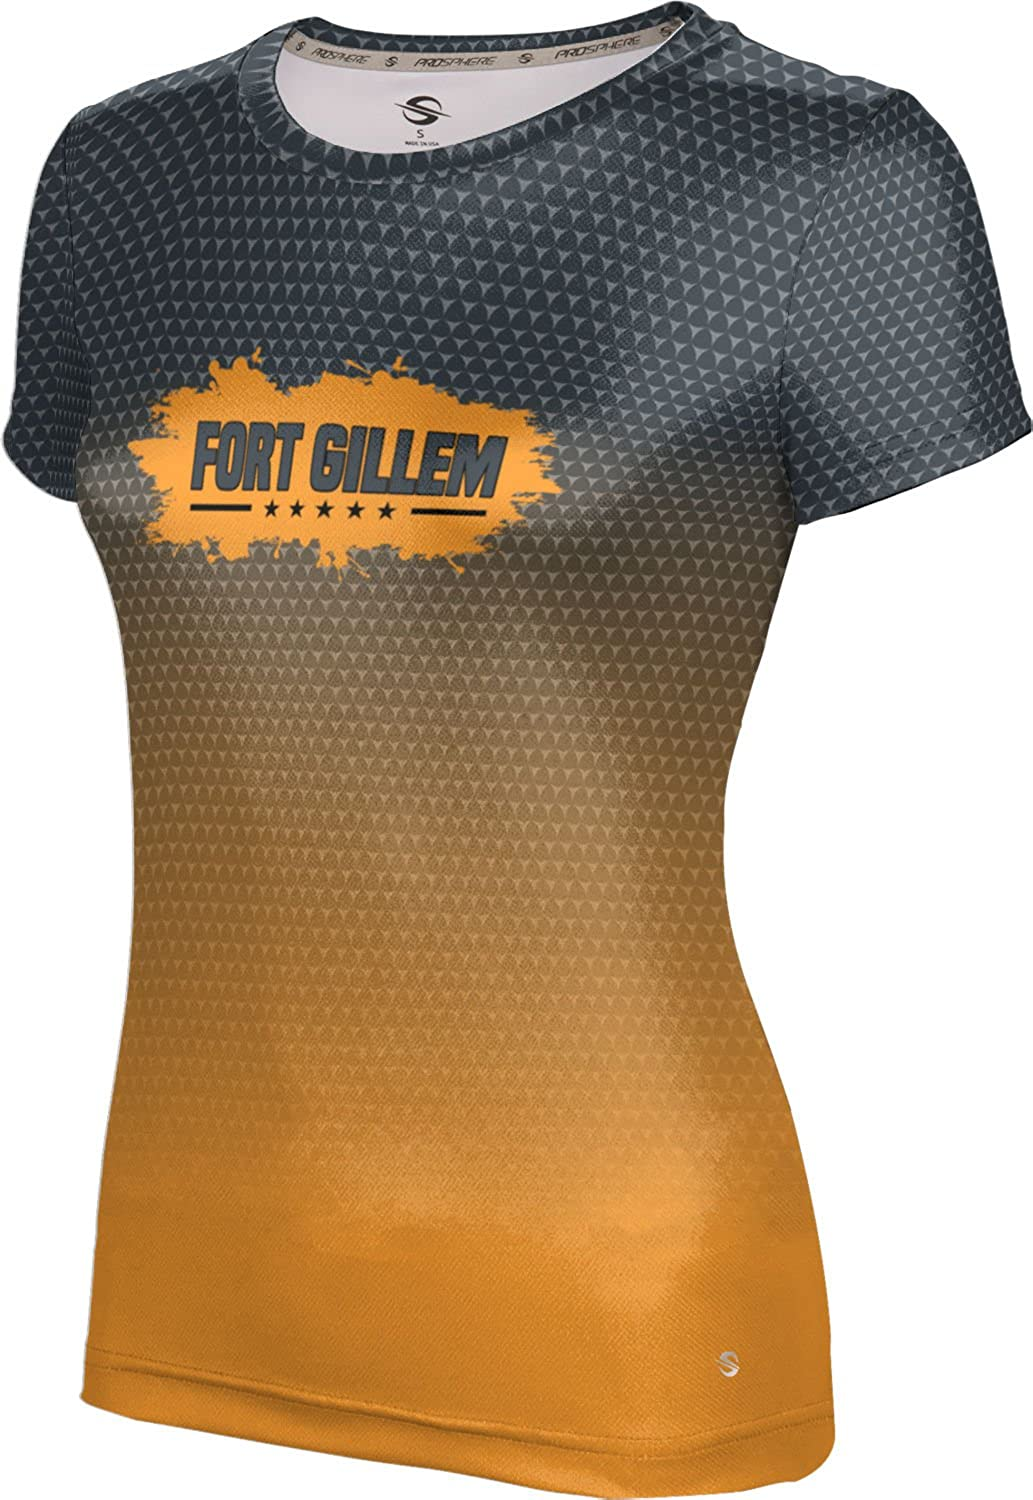 ProSphere Women's Fort Gillem Military Zoom Tech Tee